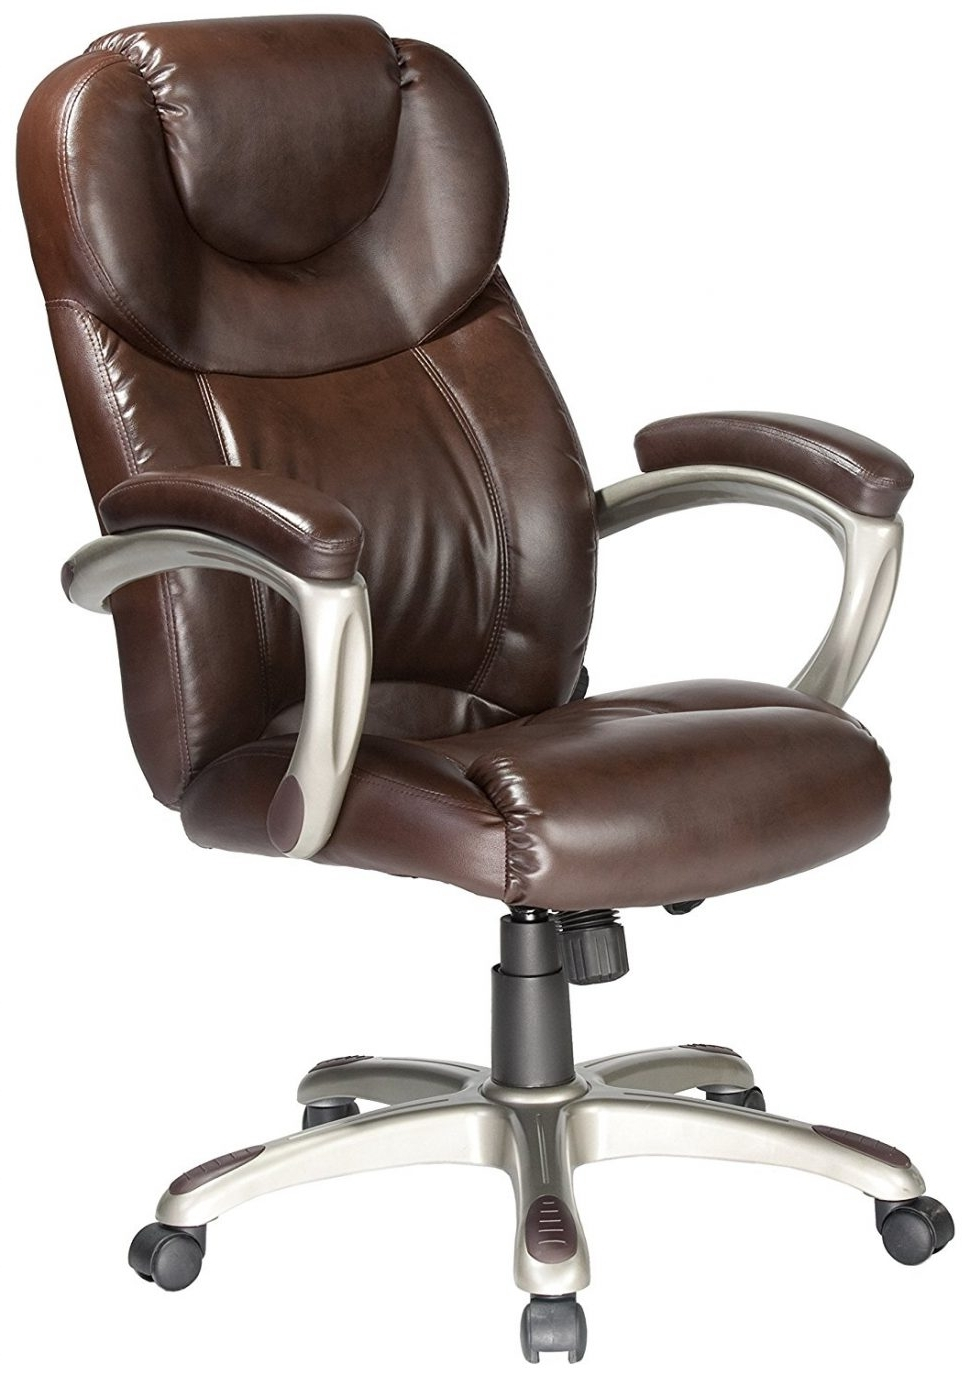 Verona Executive Leather Office Chairs Intended For Well Known Chair : Brown Leather Office Chair Oversized Chair And A Half (View 5 of 20)